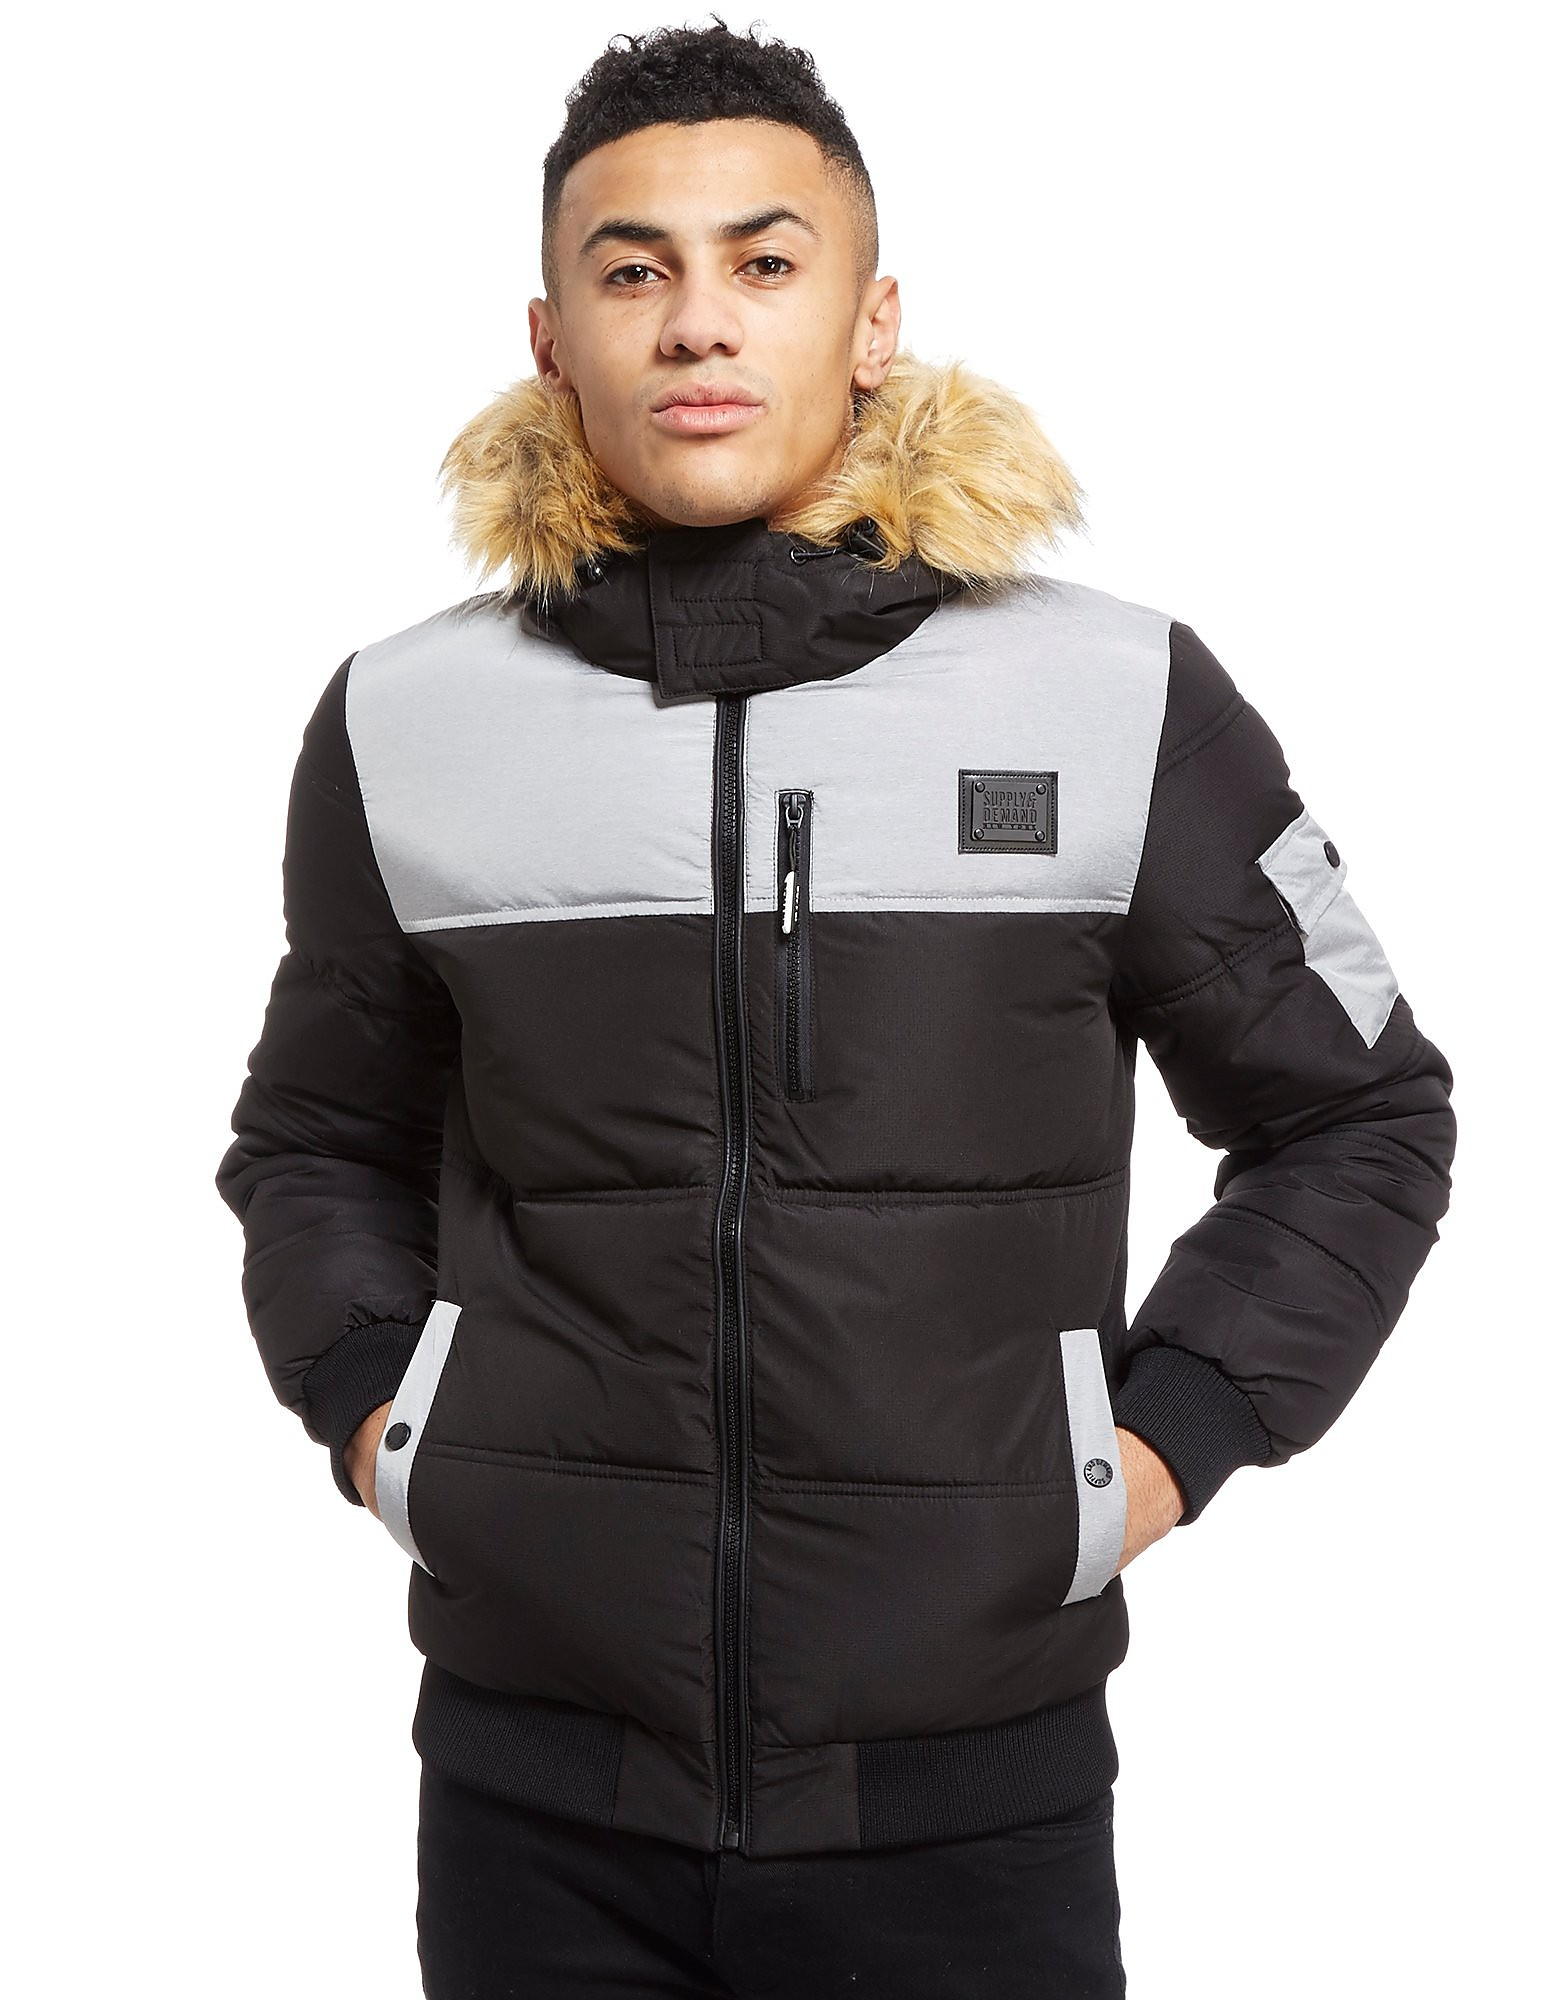 Supply & Demand Sleeper Jacket